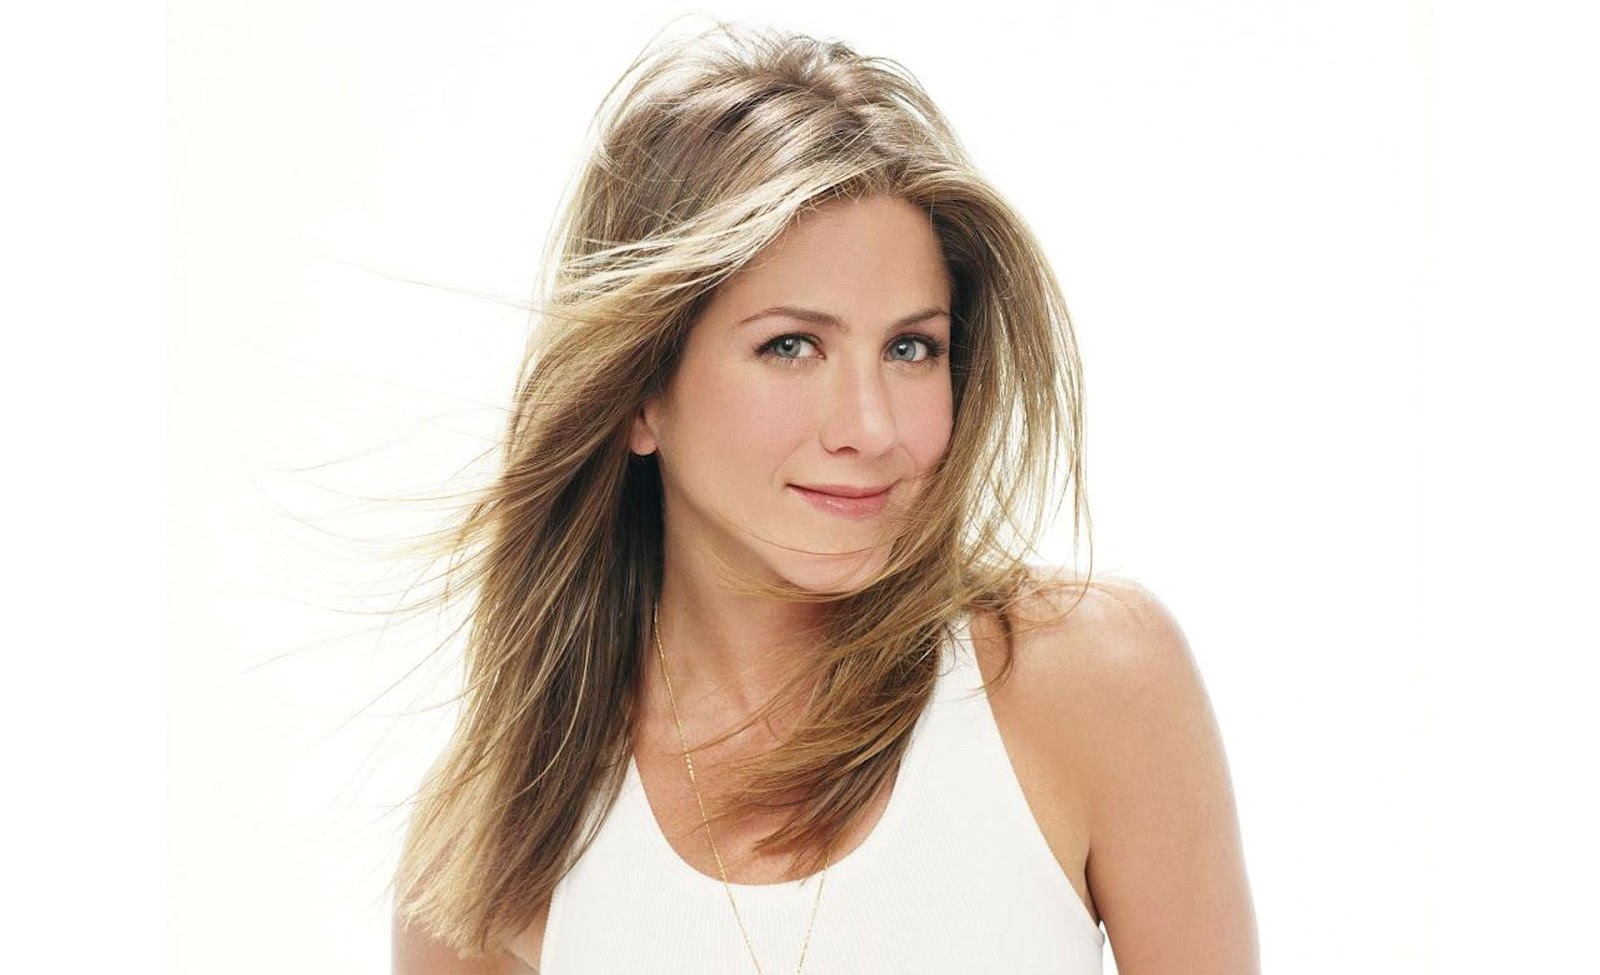 Jennifer Aniston: Jennifer Aniston Wallpaper